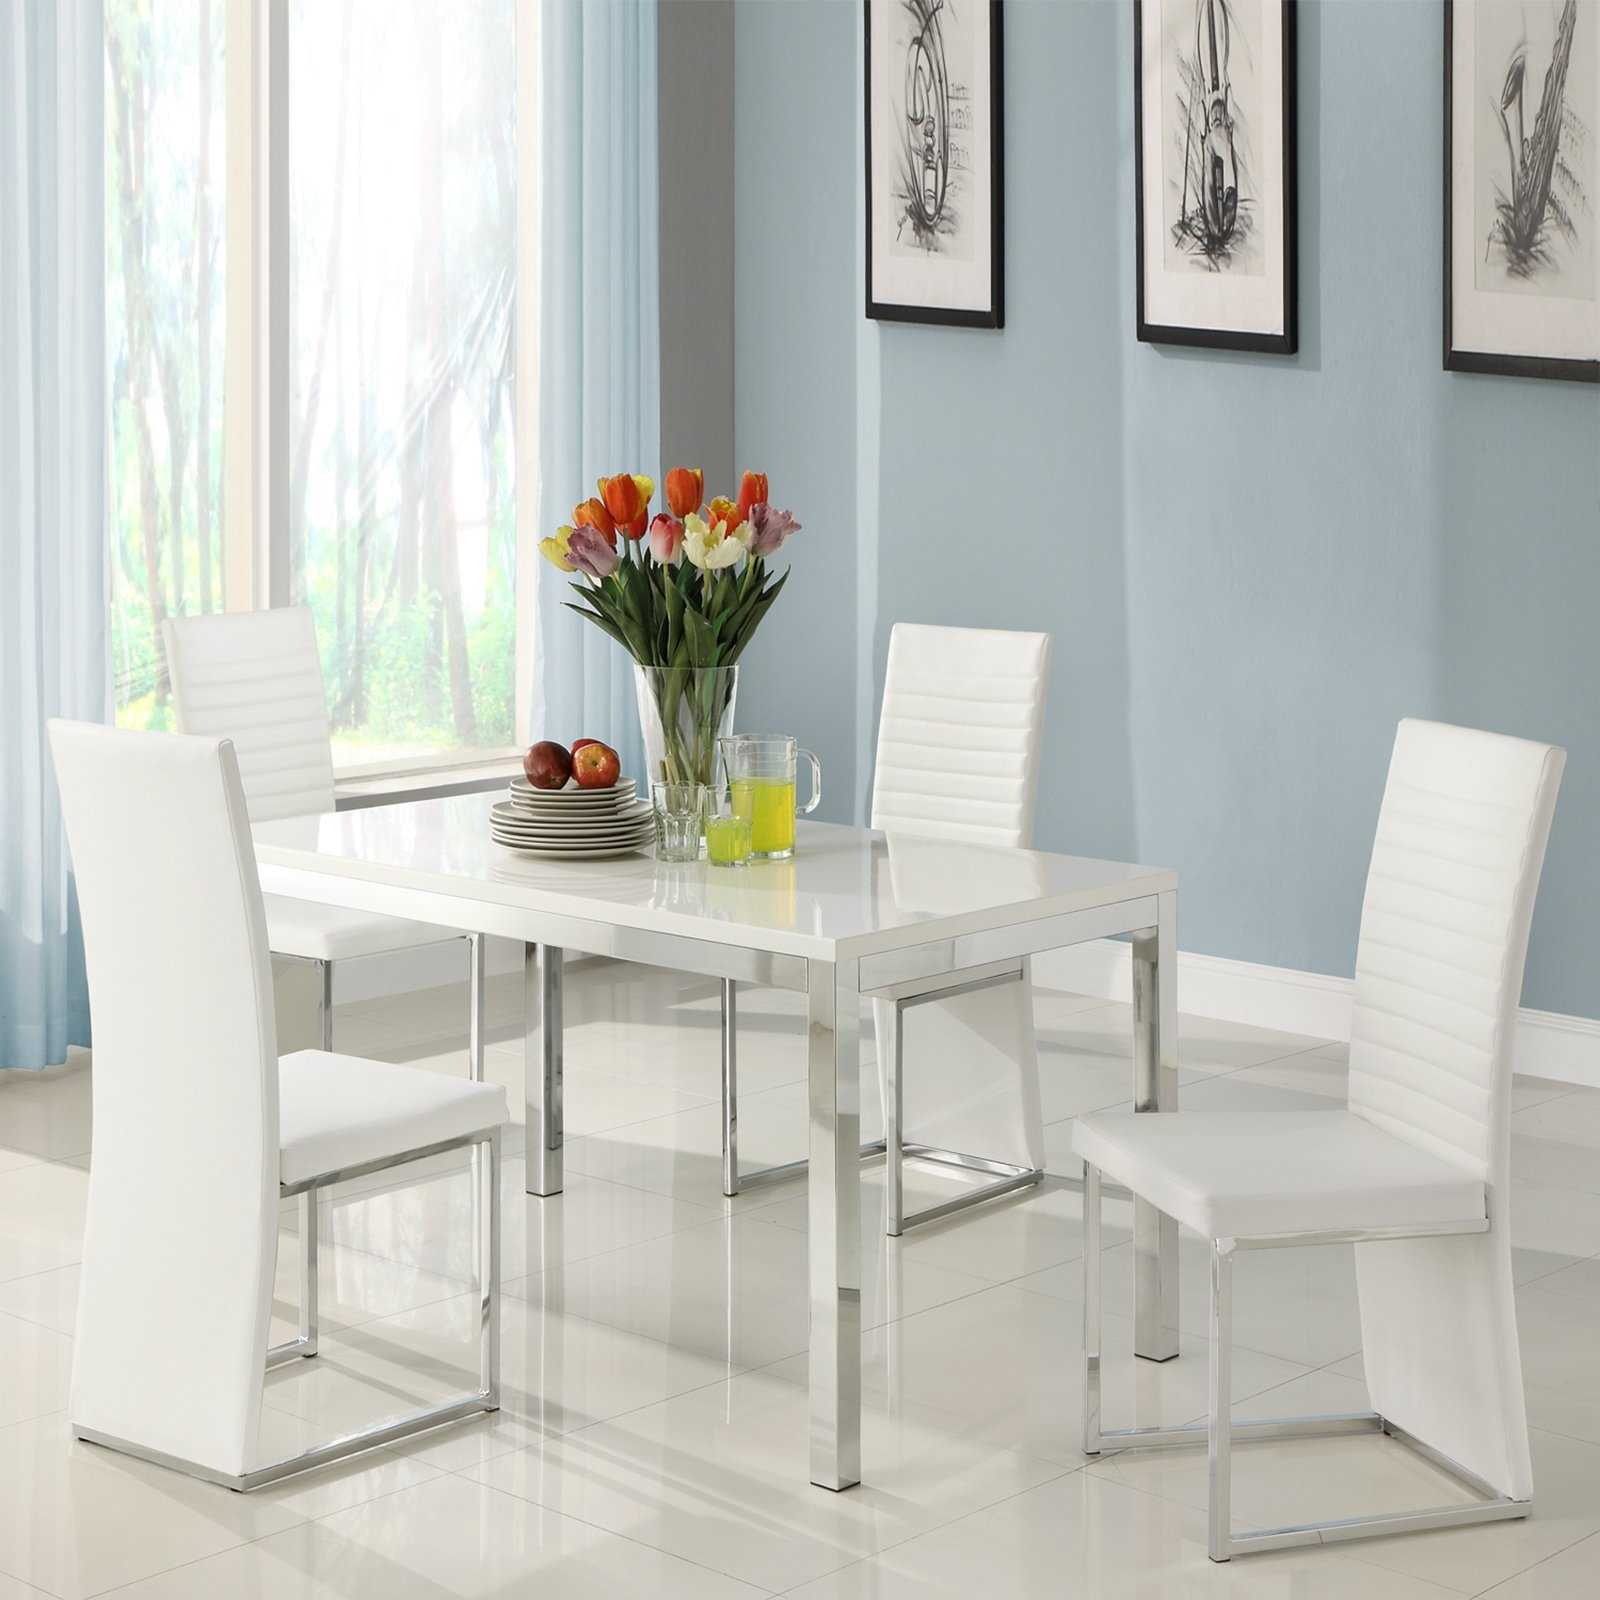 Chrome Dining Room Sets For Most Recent Homelegance Clarice 5 Piece Chrome Dining Table Set – Modern White (Gallery 14 of 25)